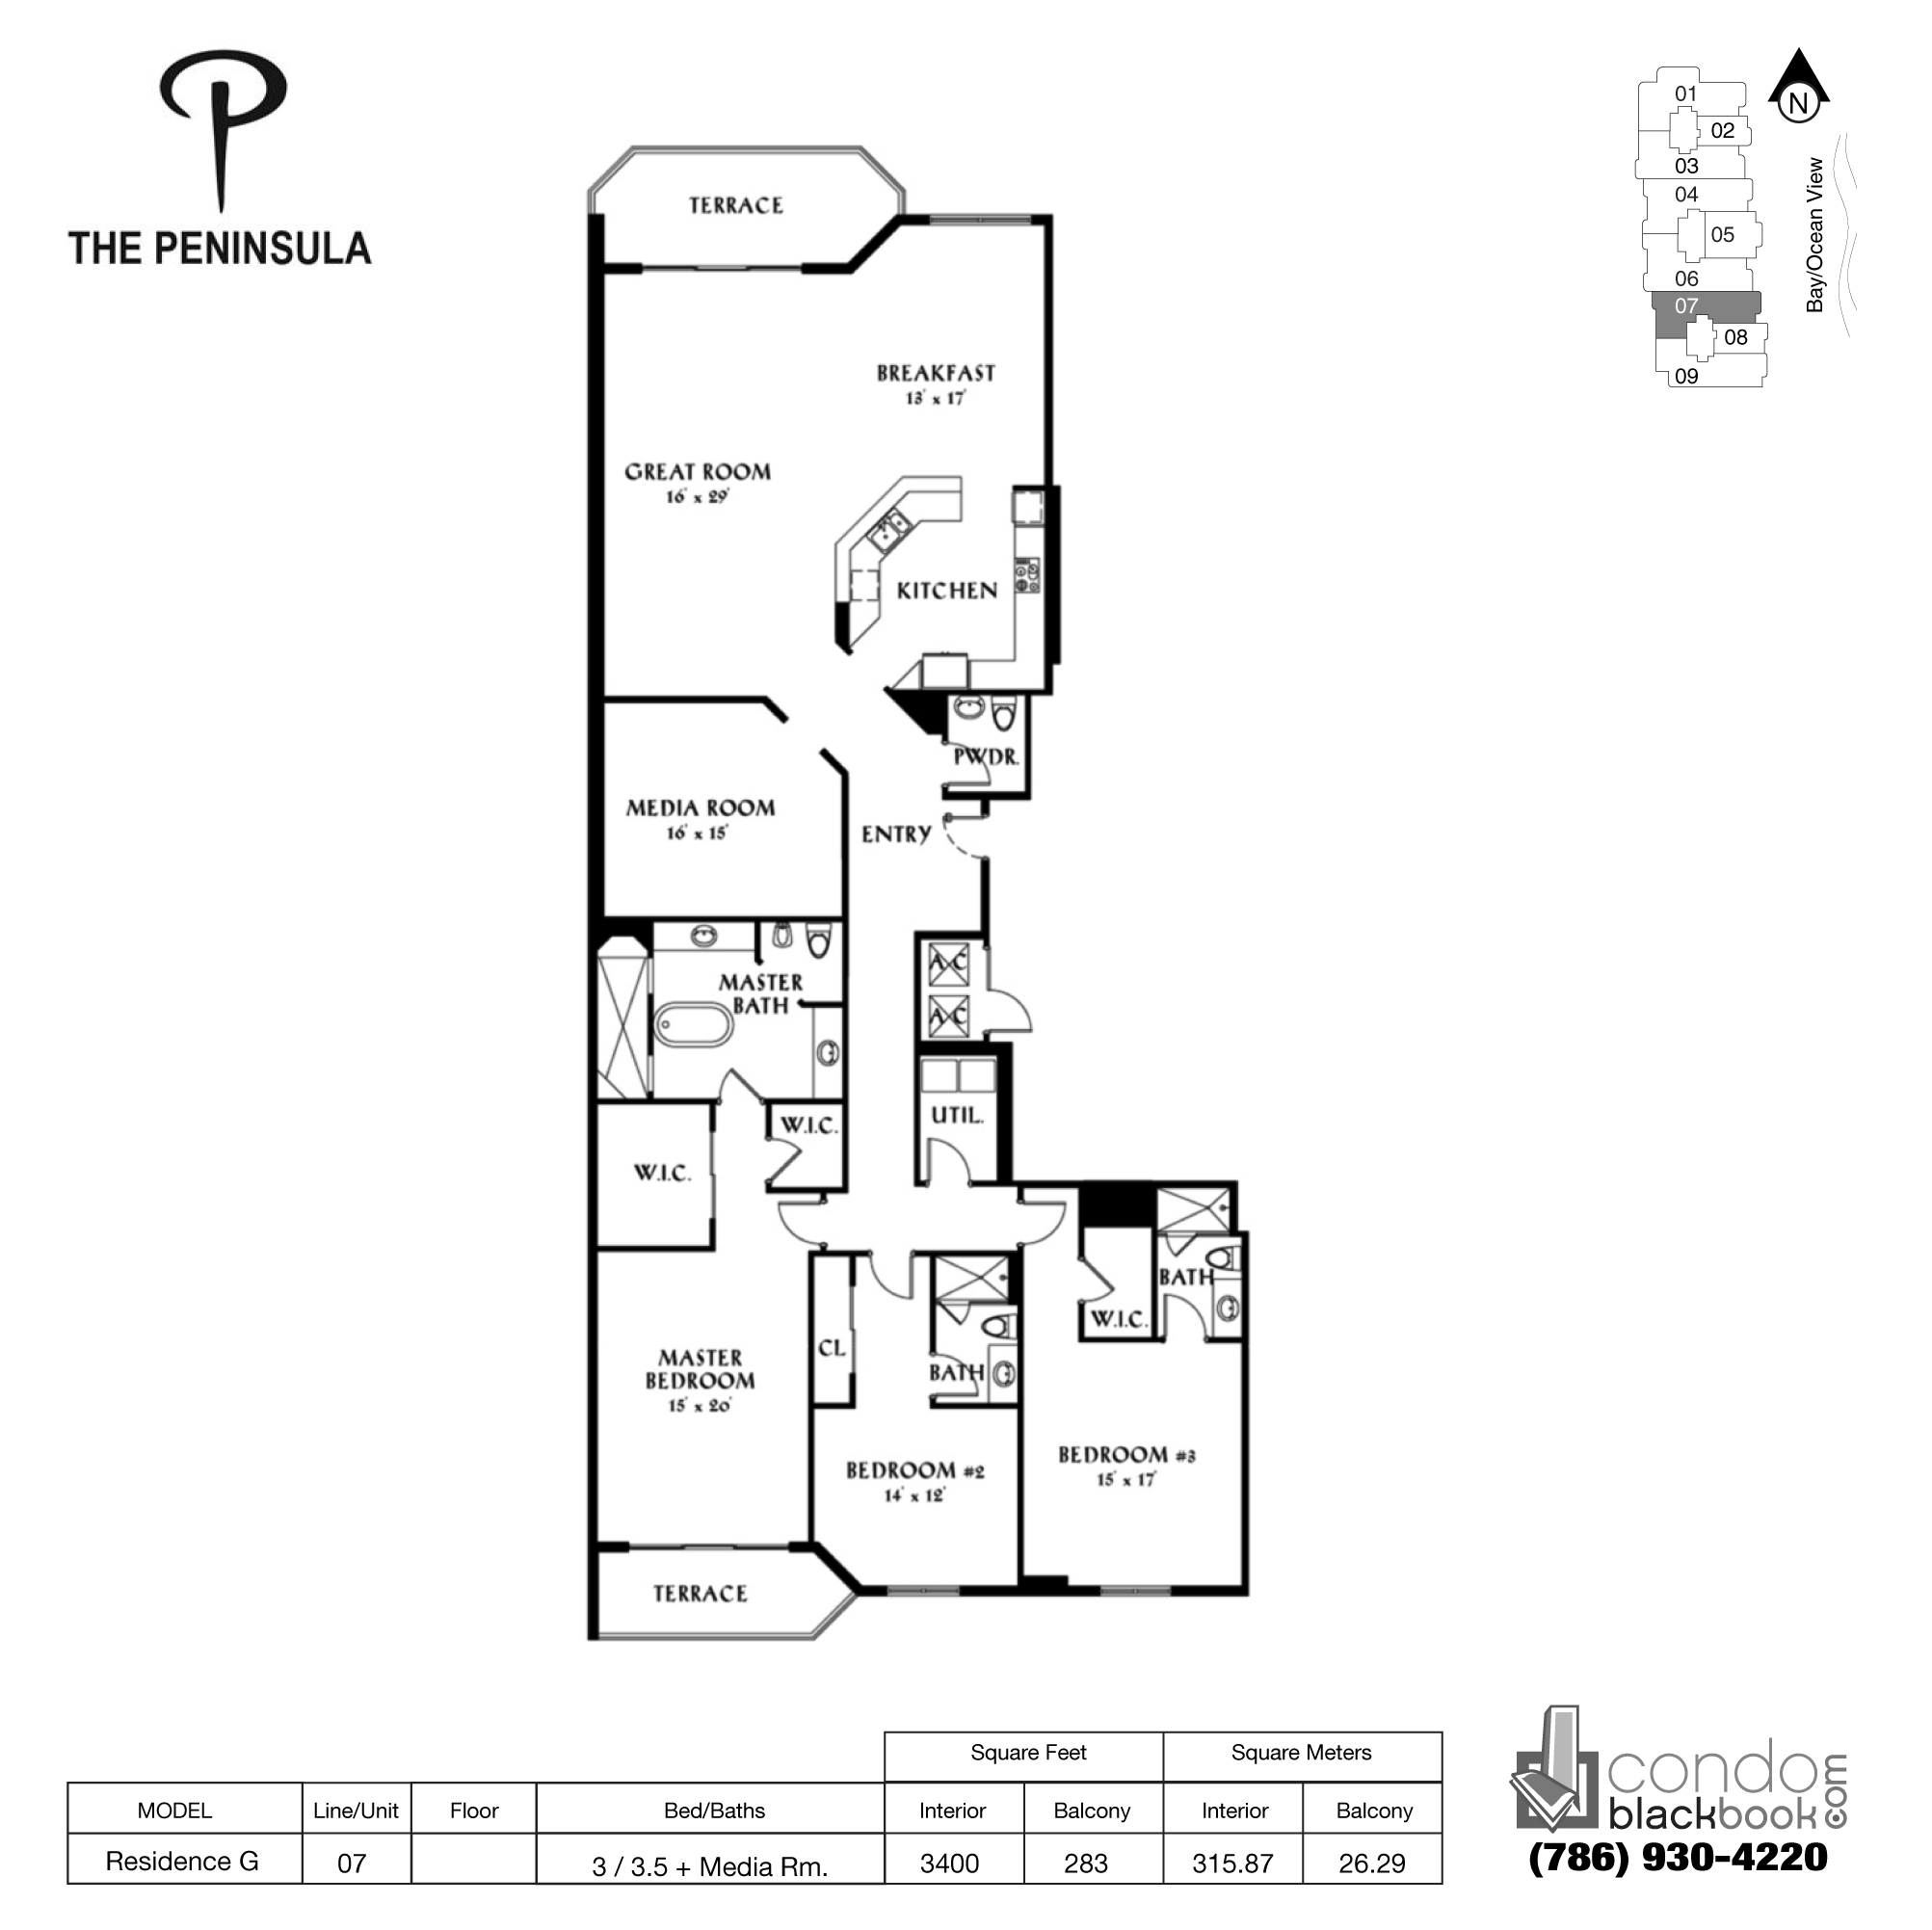 Floor plan for Peninsula II Aventura, model Res. G, line 07, 3 / 3.5 + Media Rooms bedrooms, 3400 sq ft